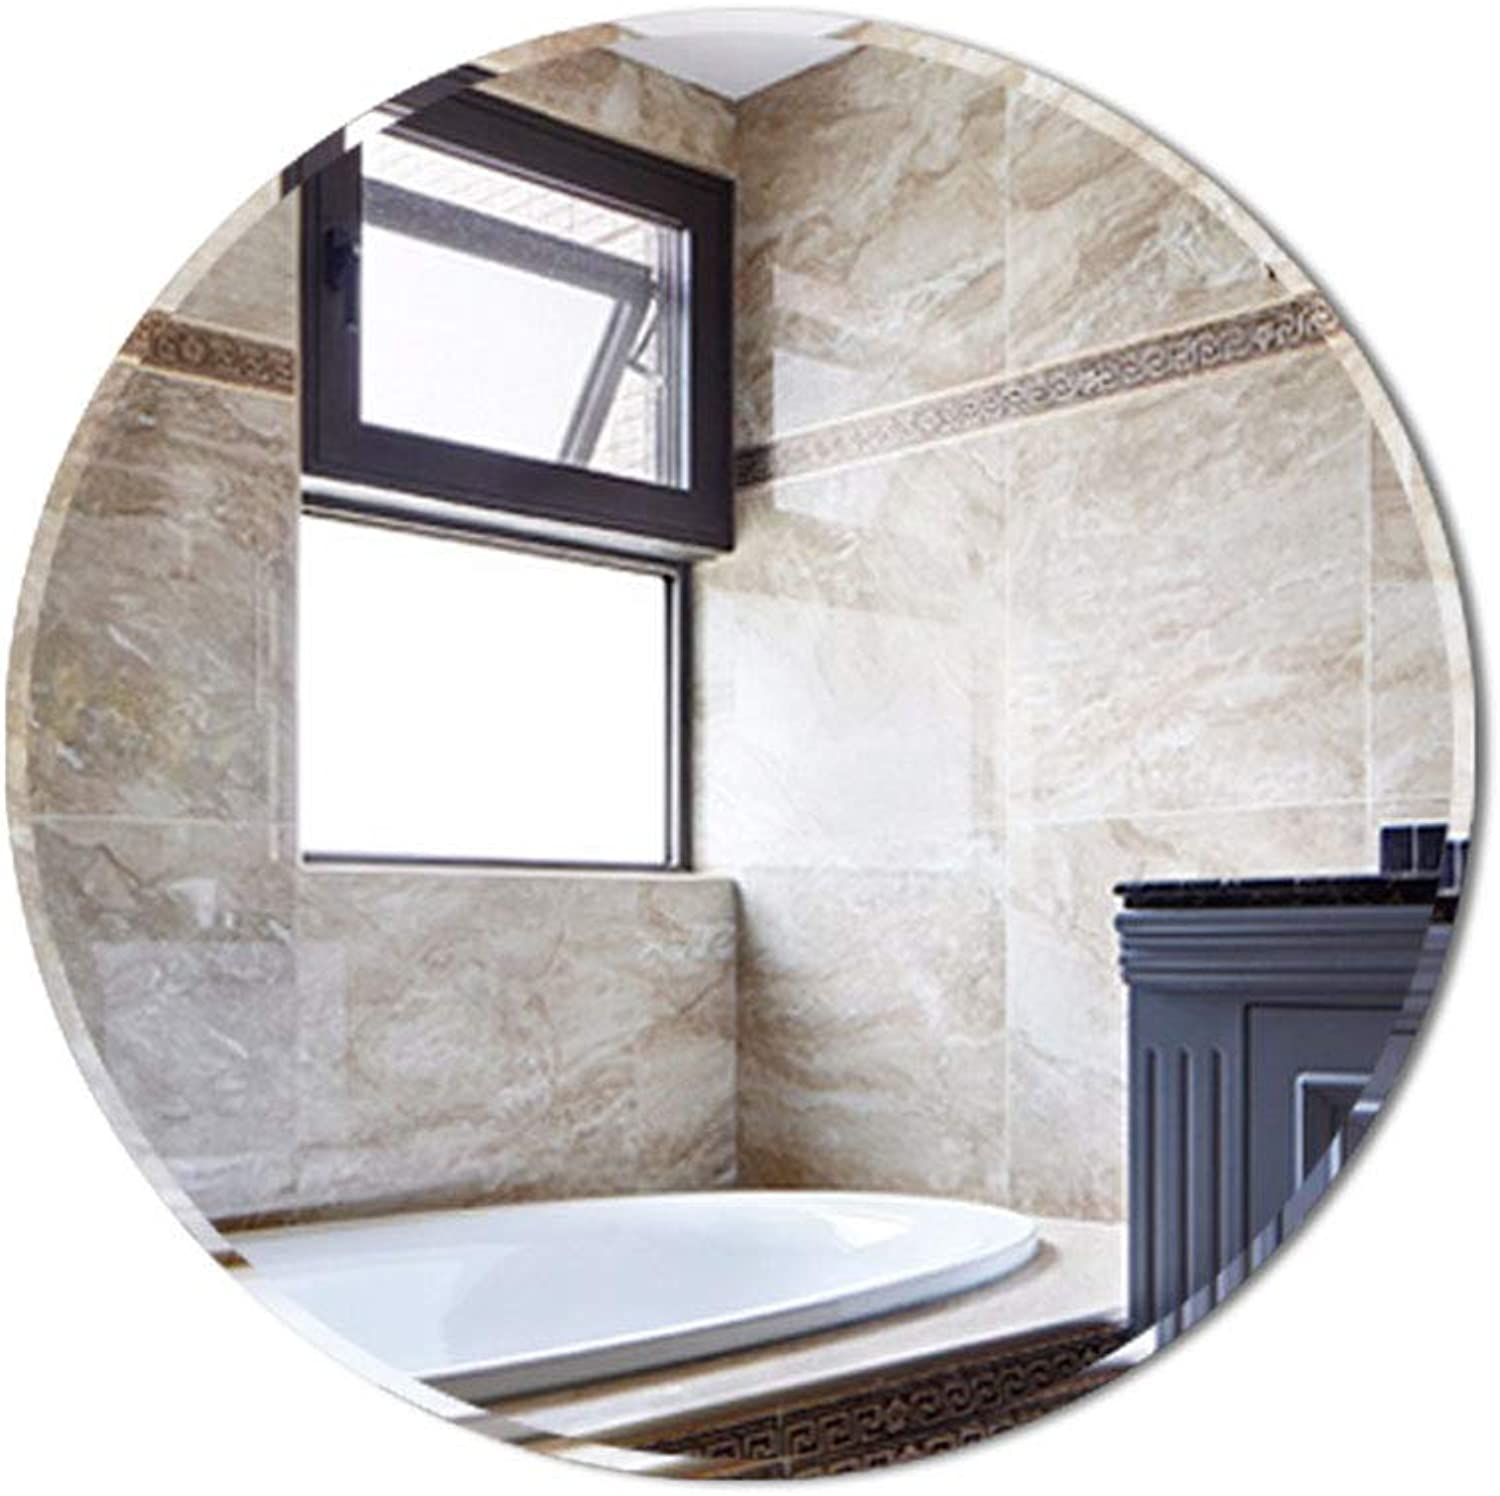 Ound bathroom mirror, Wall-Mounted Frameless, Beauty Mirror, Bedroom Hotel, Waterproof and Explosion-Proof, Thickness 5m